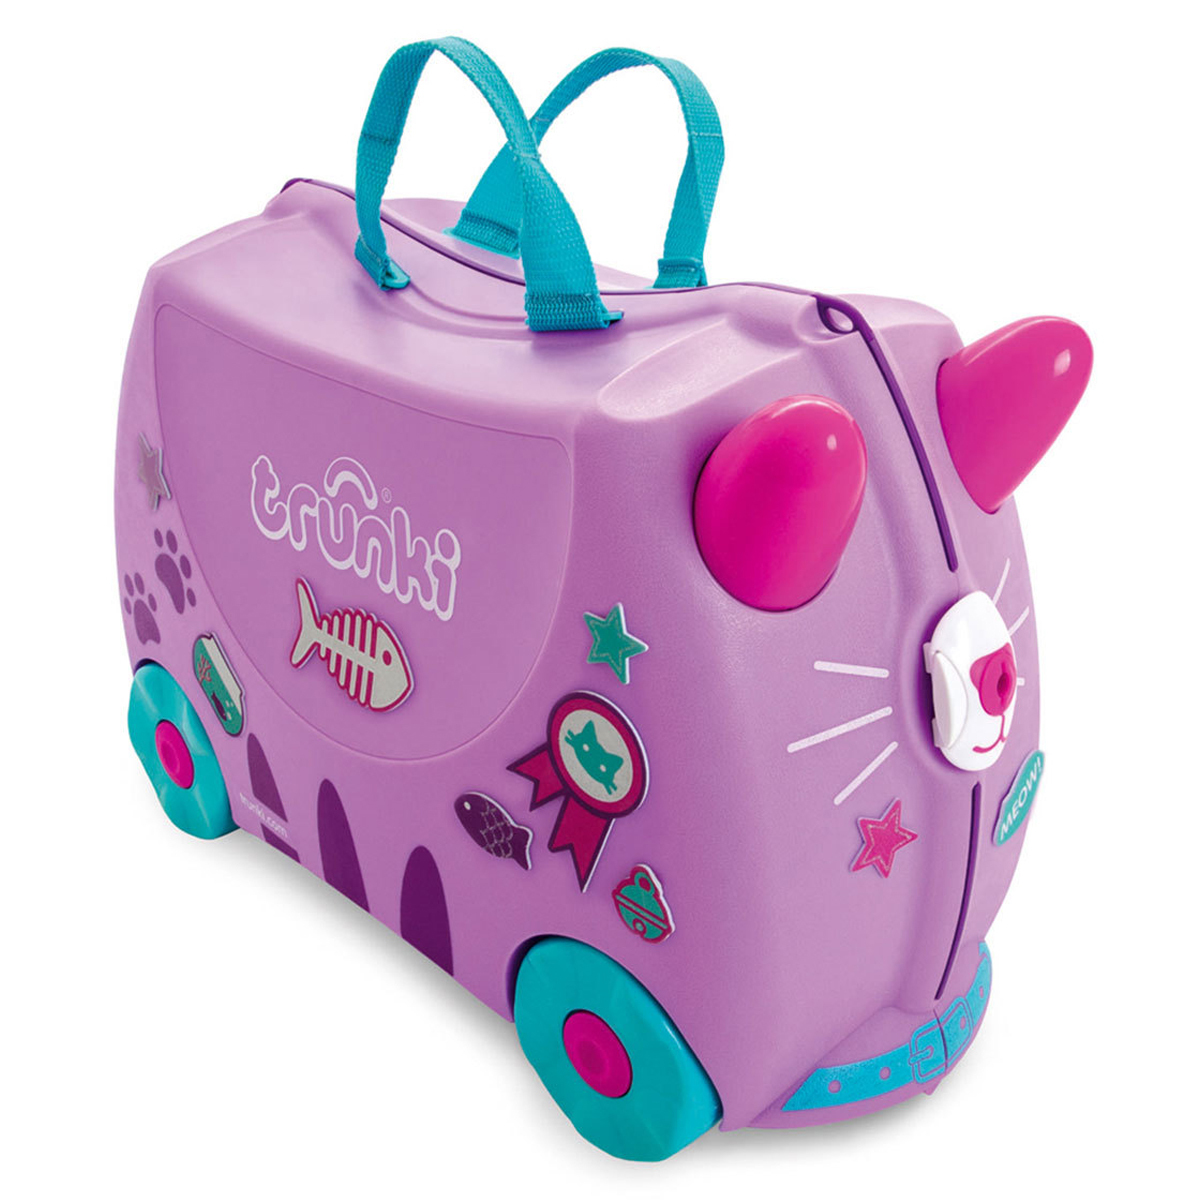 Bagagerie enfant Valise Ride-on - Chat Cassie Valise Ride-on - Chat Cassie